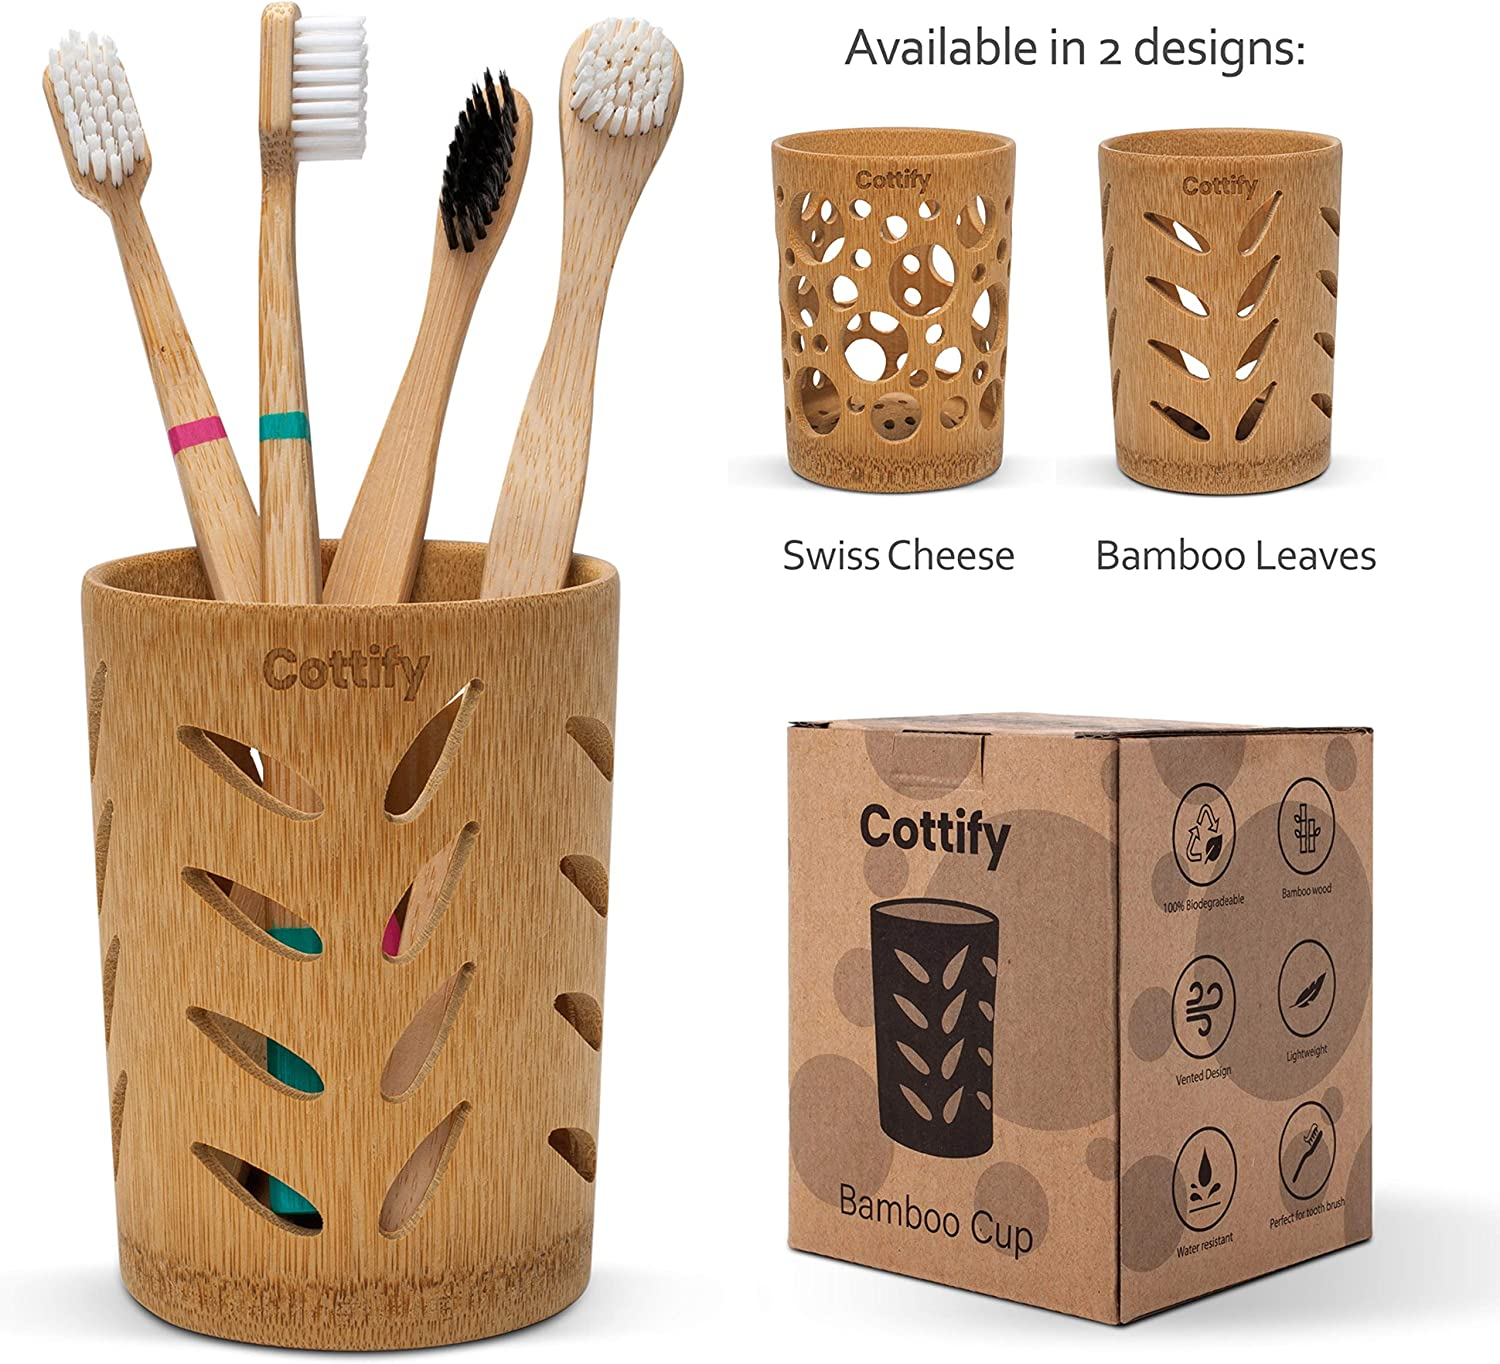 Amazon Com Premium Bamboo Toothbrush Holder For Bathroom Toothbrush Cup With Holes Quick Drying Bathroom Cup 360 Air Circulation Toothpaste Holder For Bathroom Bathroom Cup Holder Bamboo Leaves Kitchen Dining